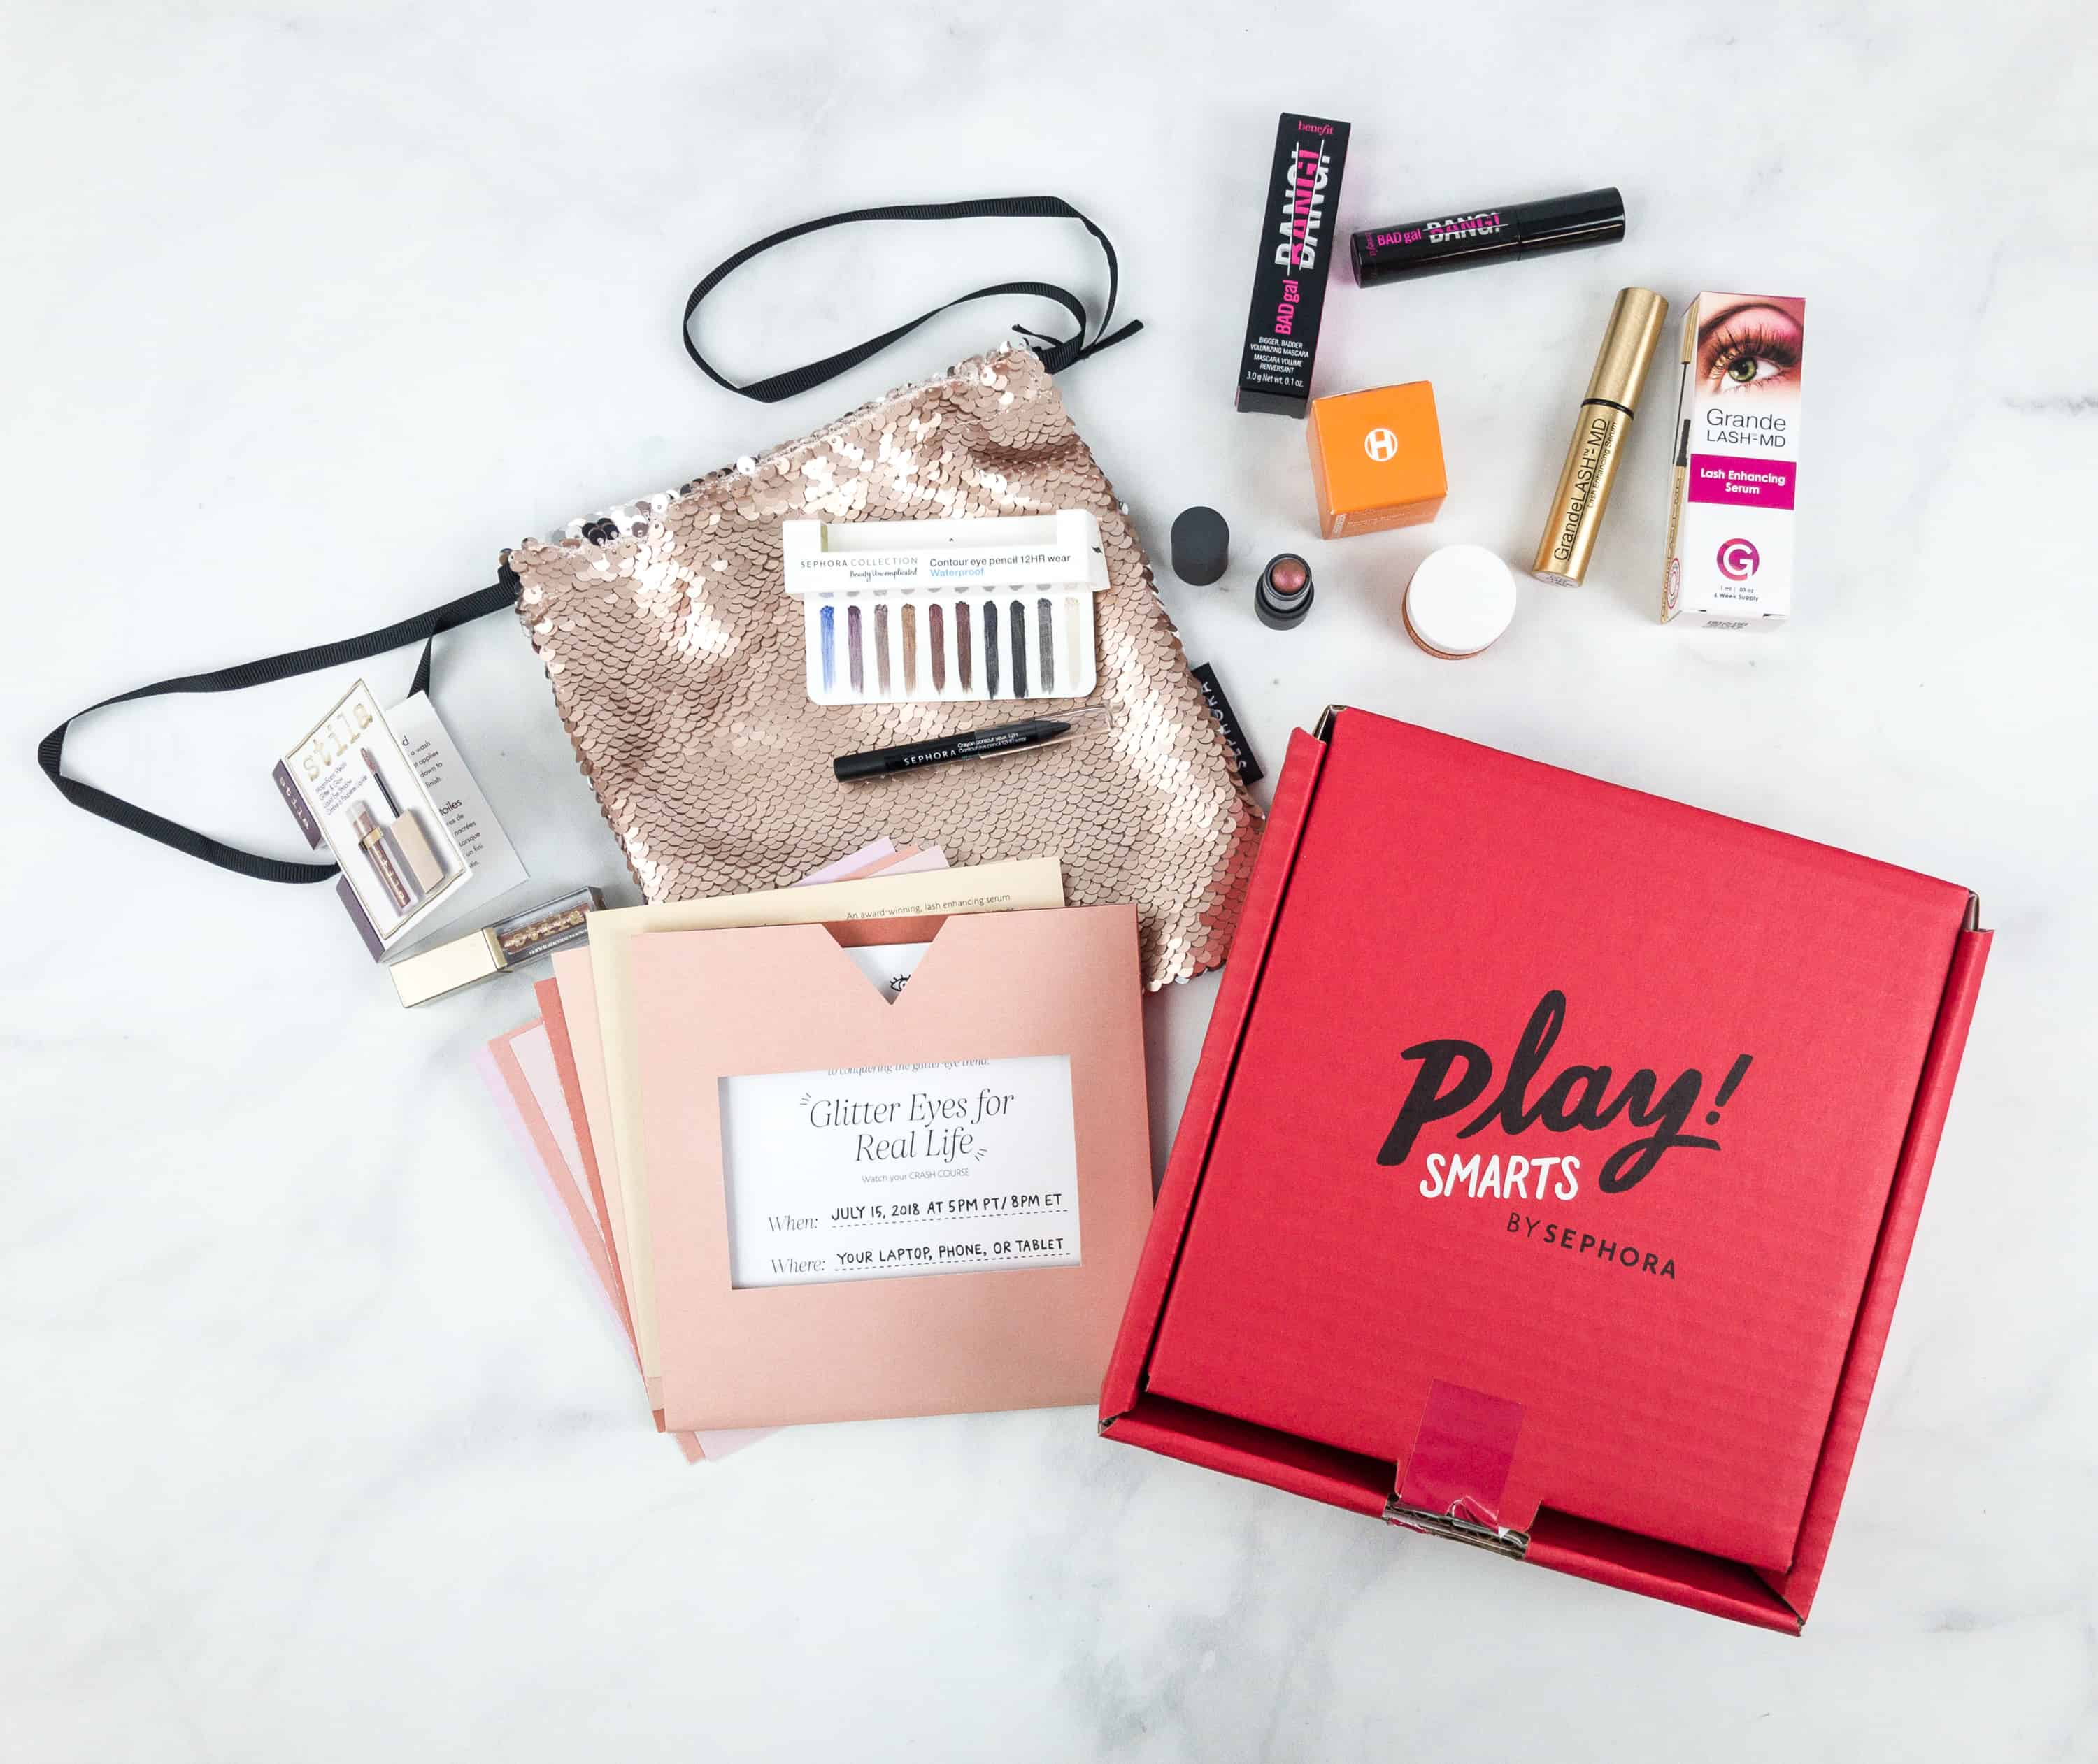 Play By Sephora Play Smarts Glitter Eyes For Real Life Limited